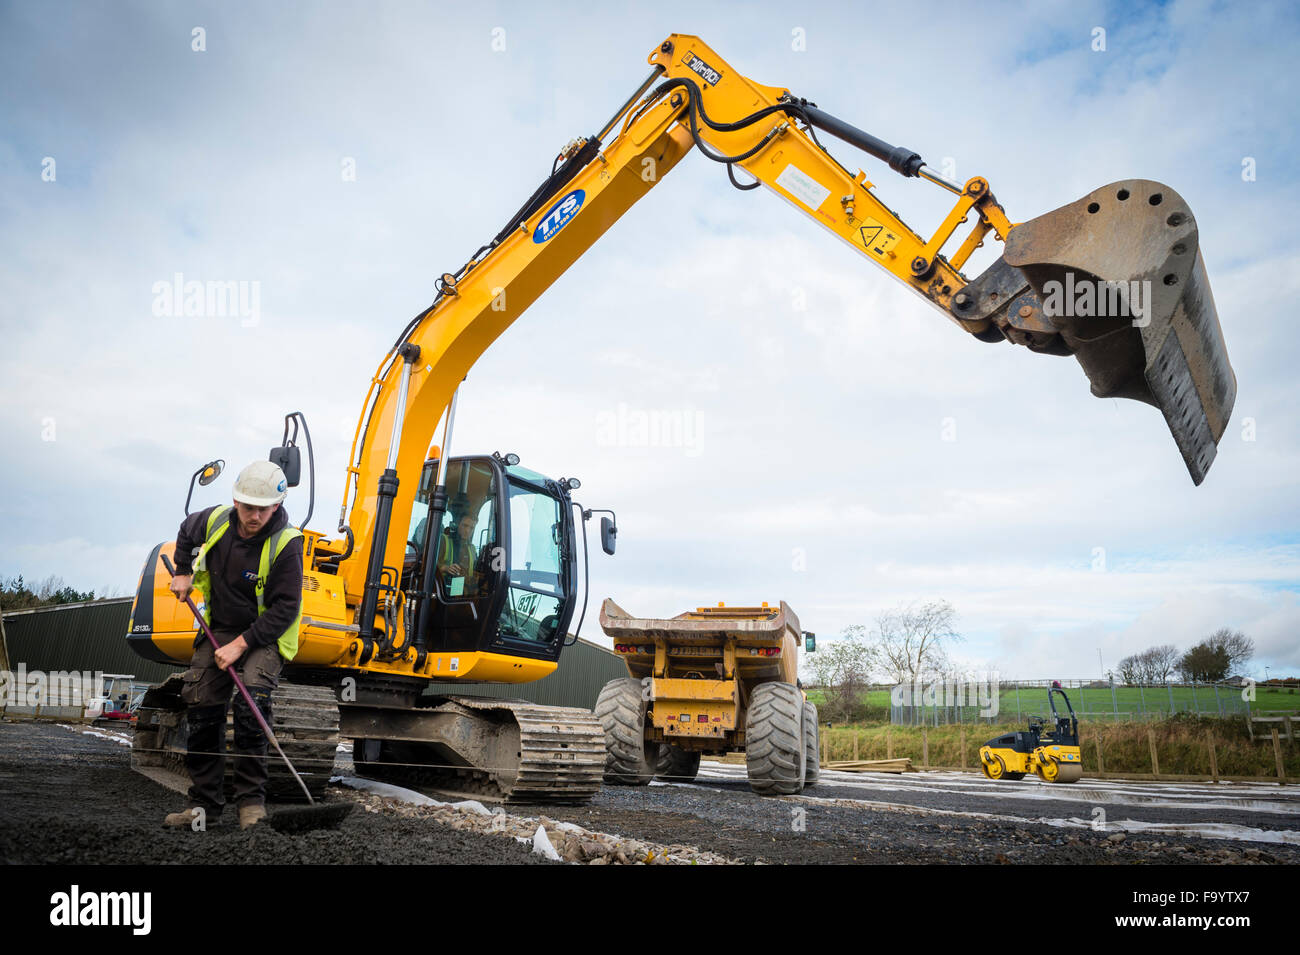 Yellow Heavy Jcb Digger Excavator Plant Machinery At Work On Stock